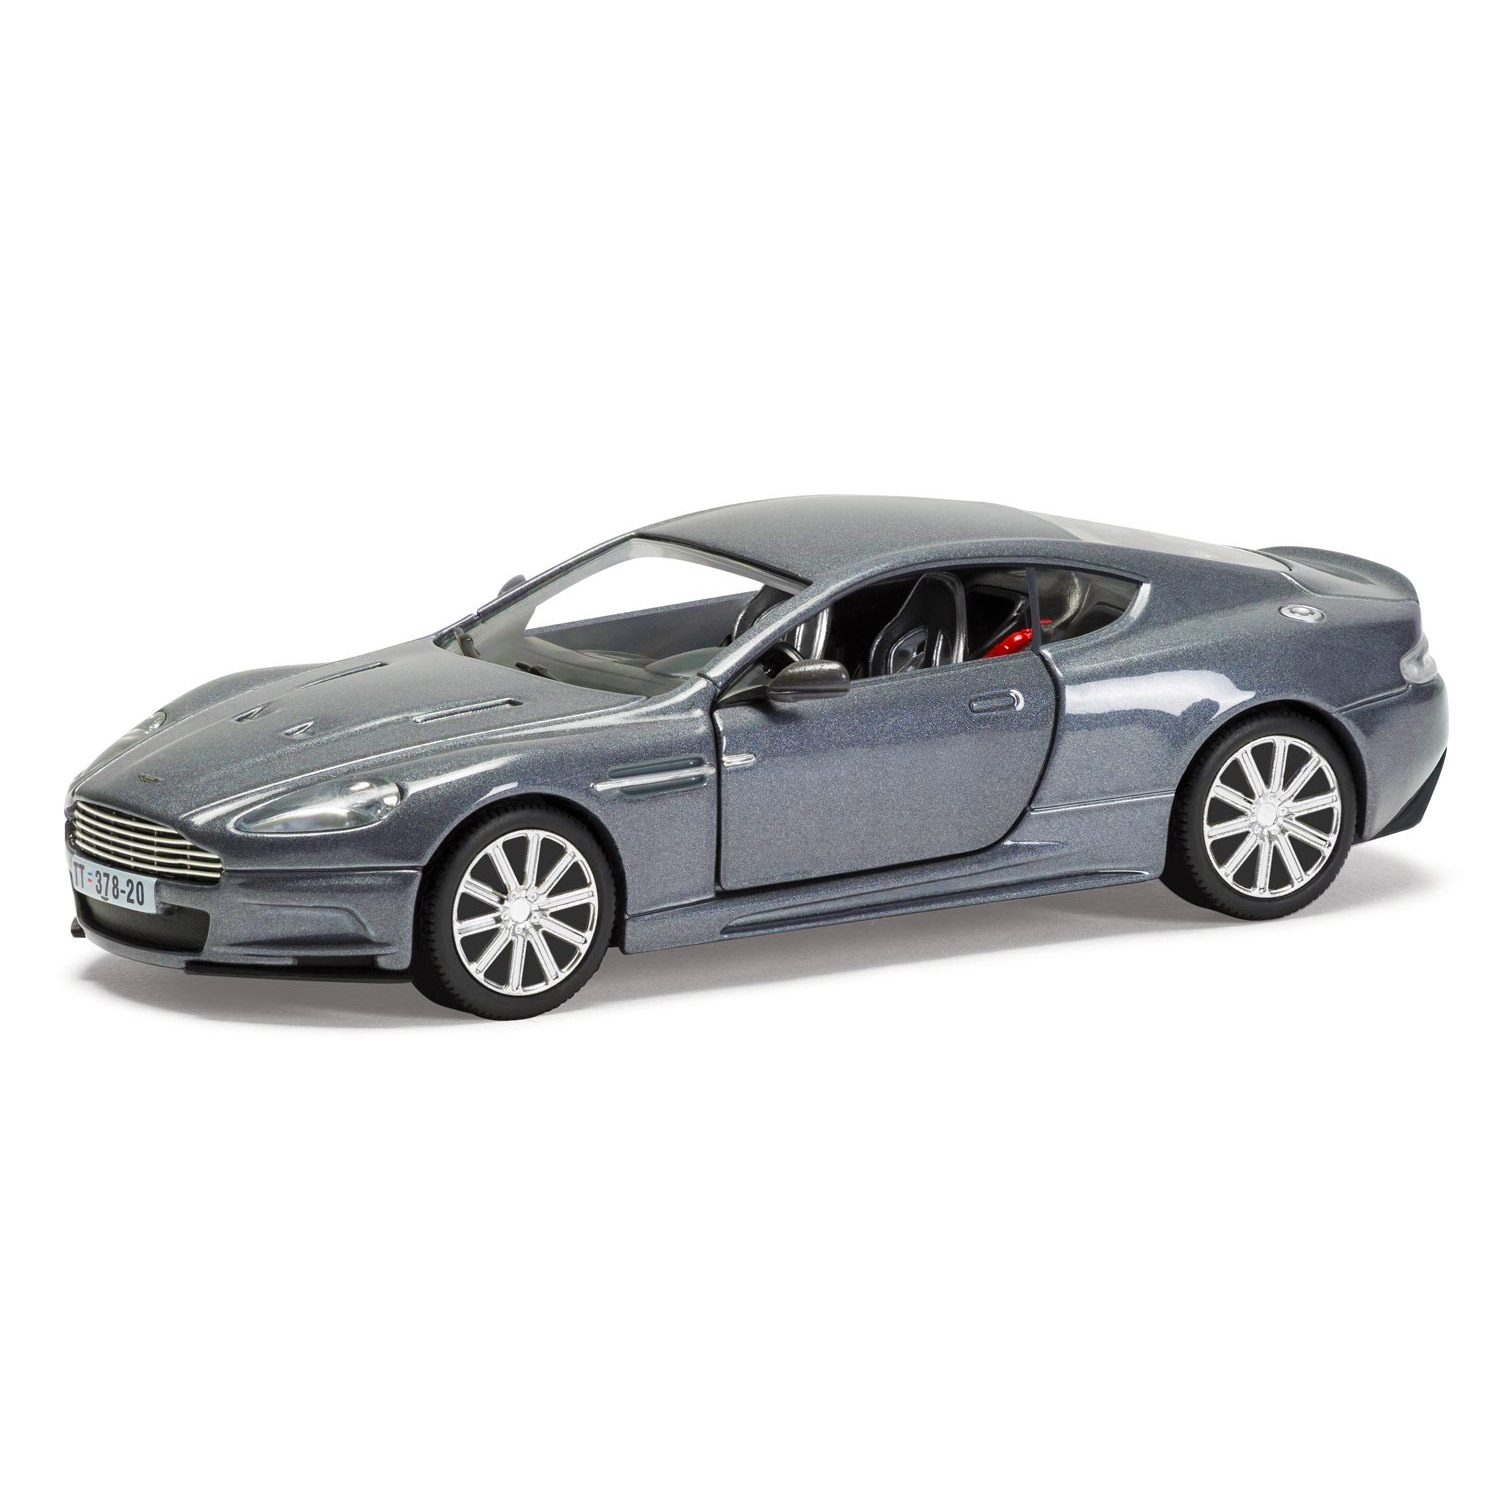 mod le r duit voiture james bond 007 aston martin dbs. Black Bedroom Furniture Sets. Home Design Ideas